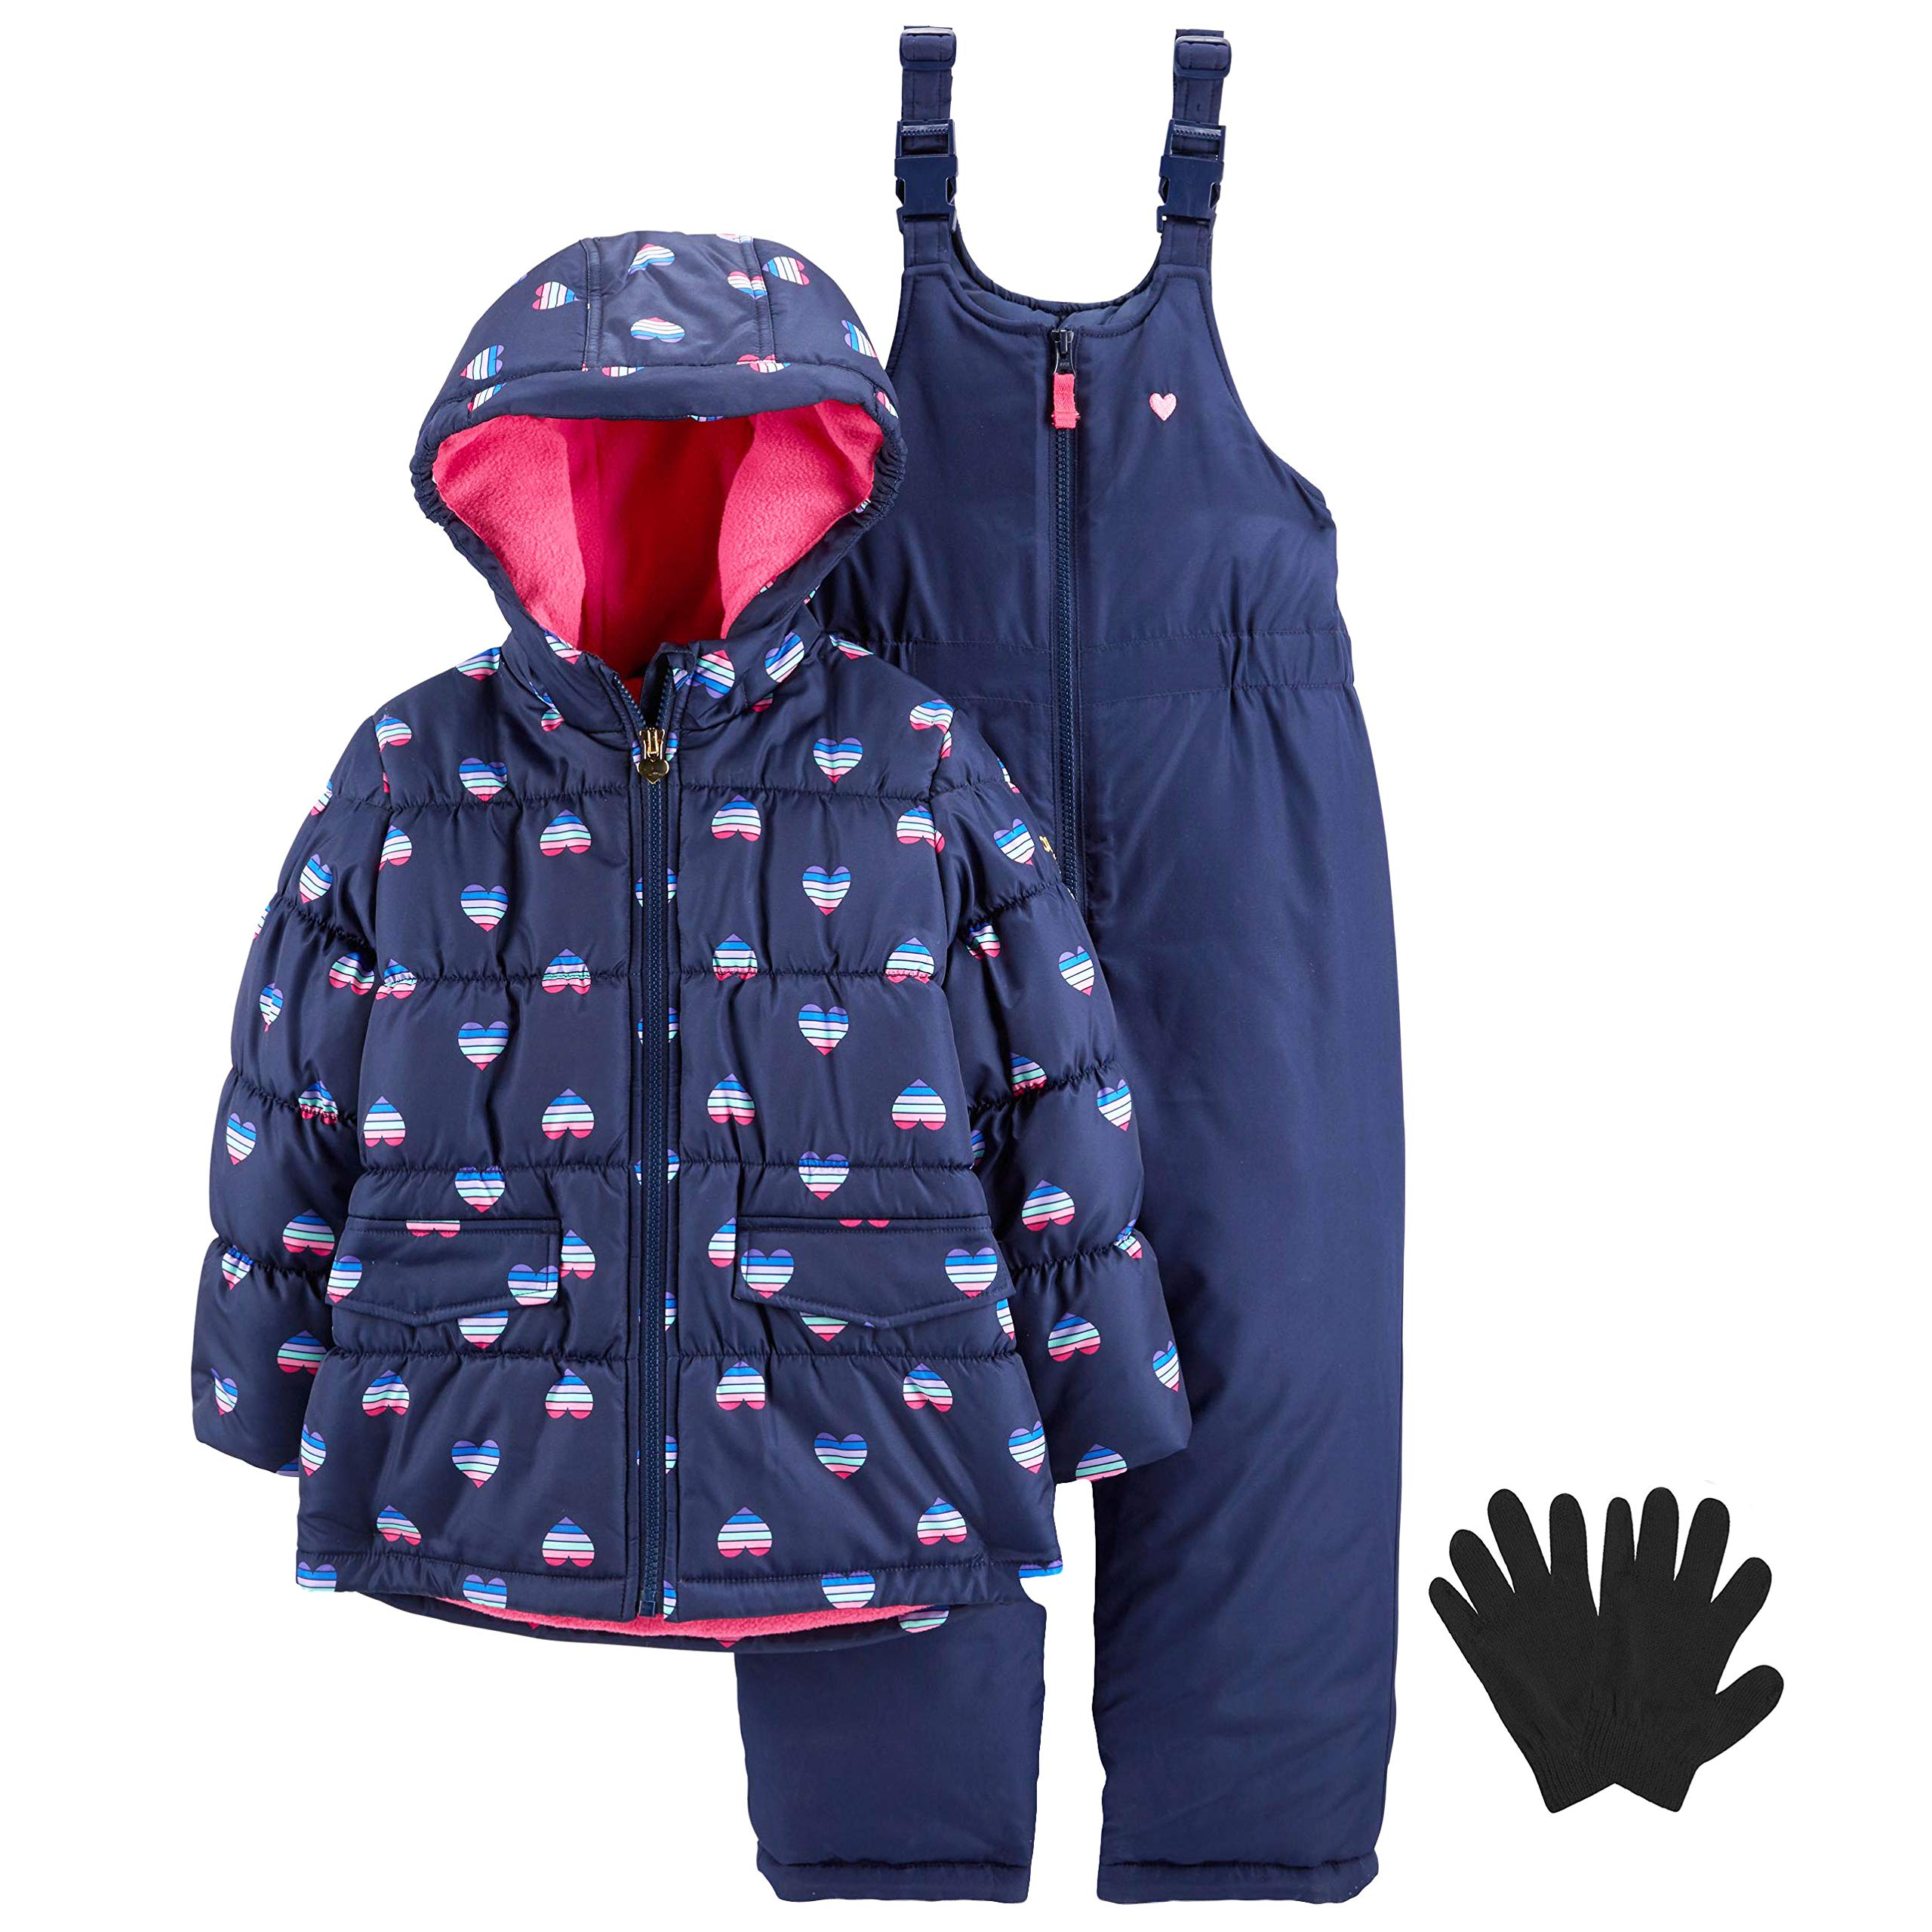 OshKosh Girls Winter Snowsuit Coat, Snow Bib Overalls, and Gloves Navy Pink 4 by OshKosh B'Gosh